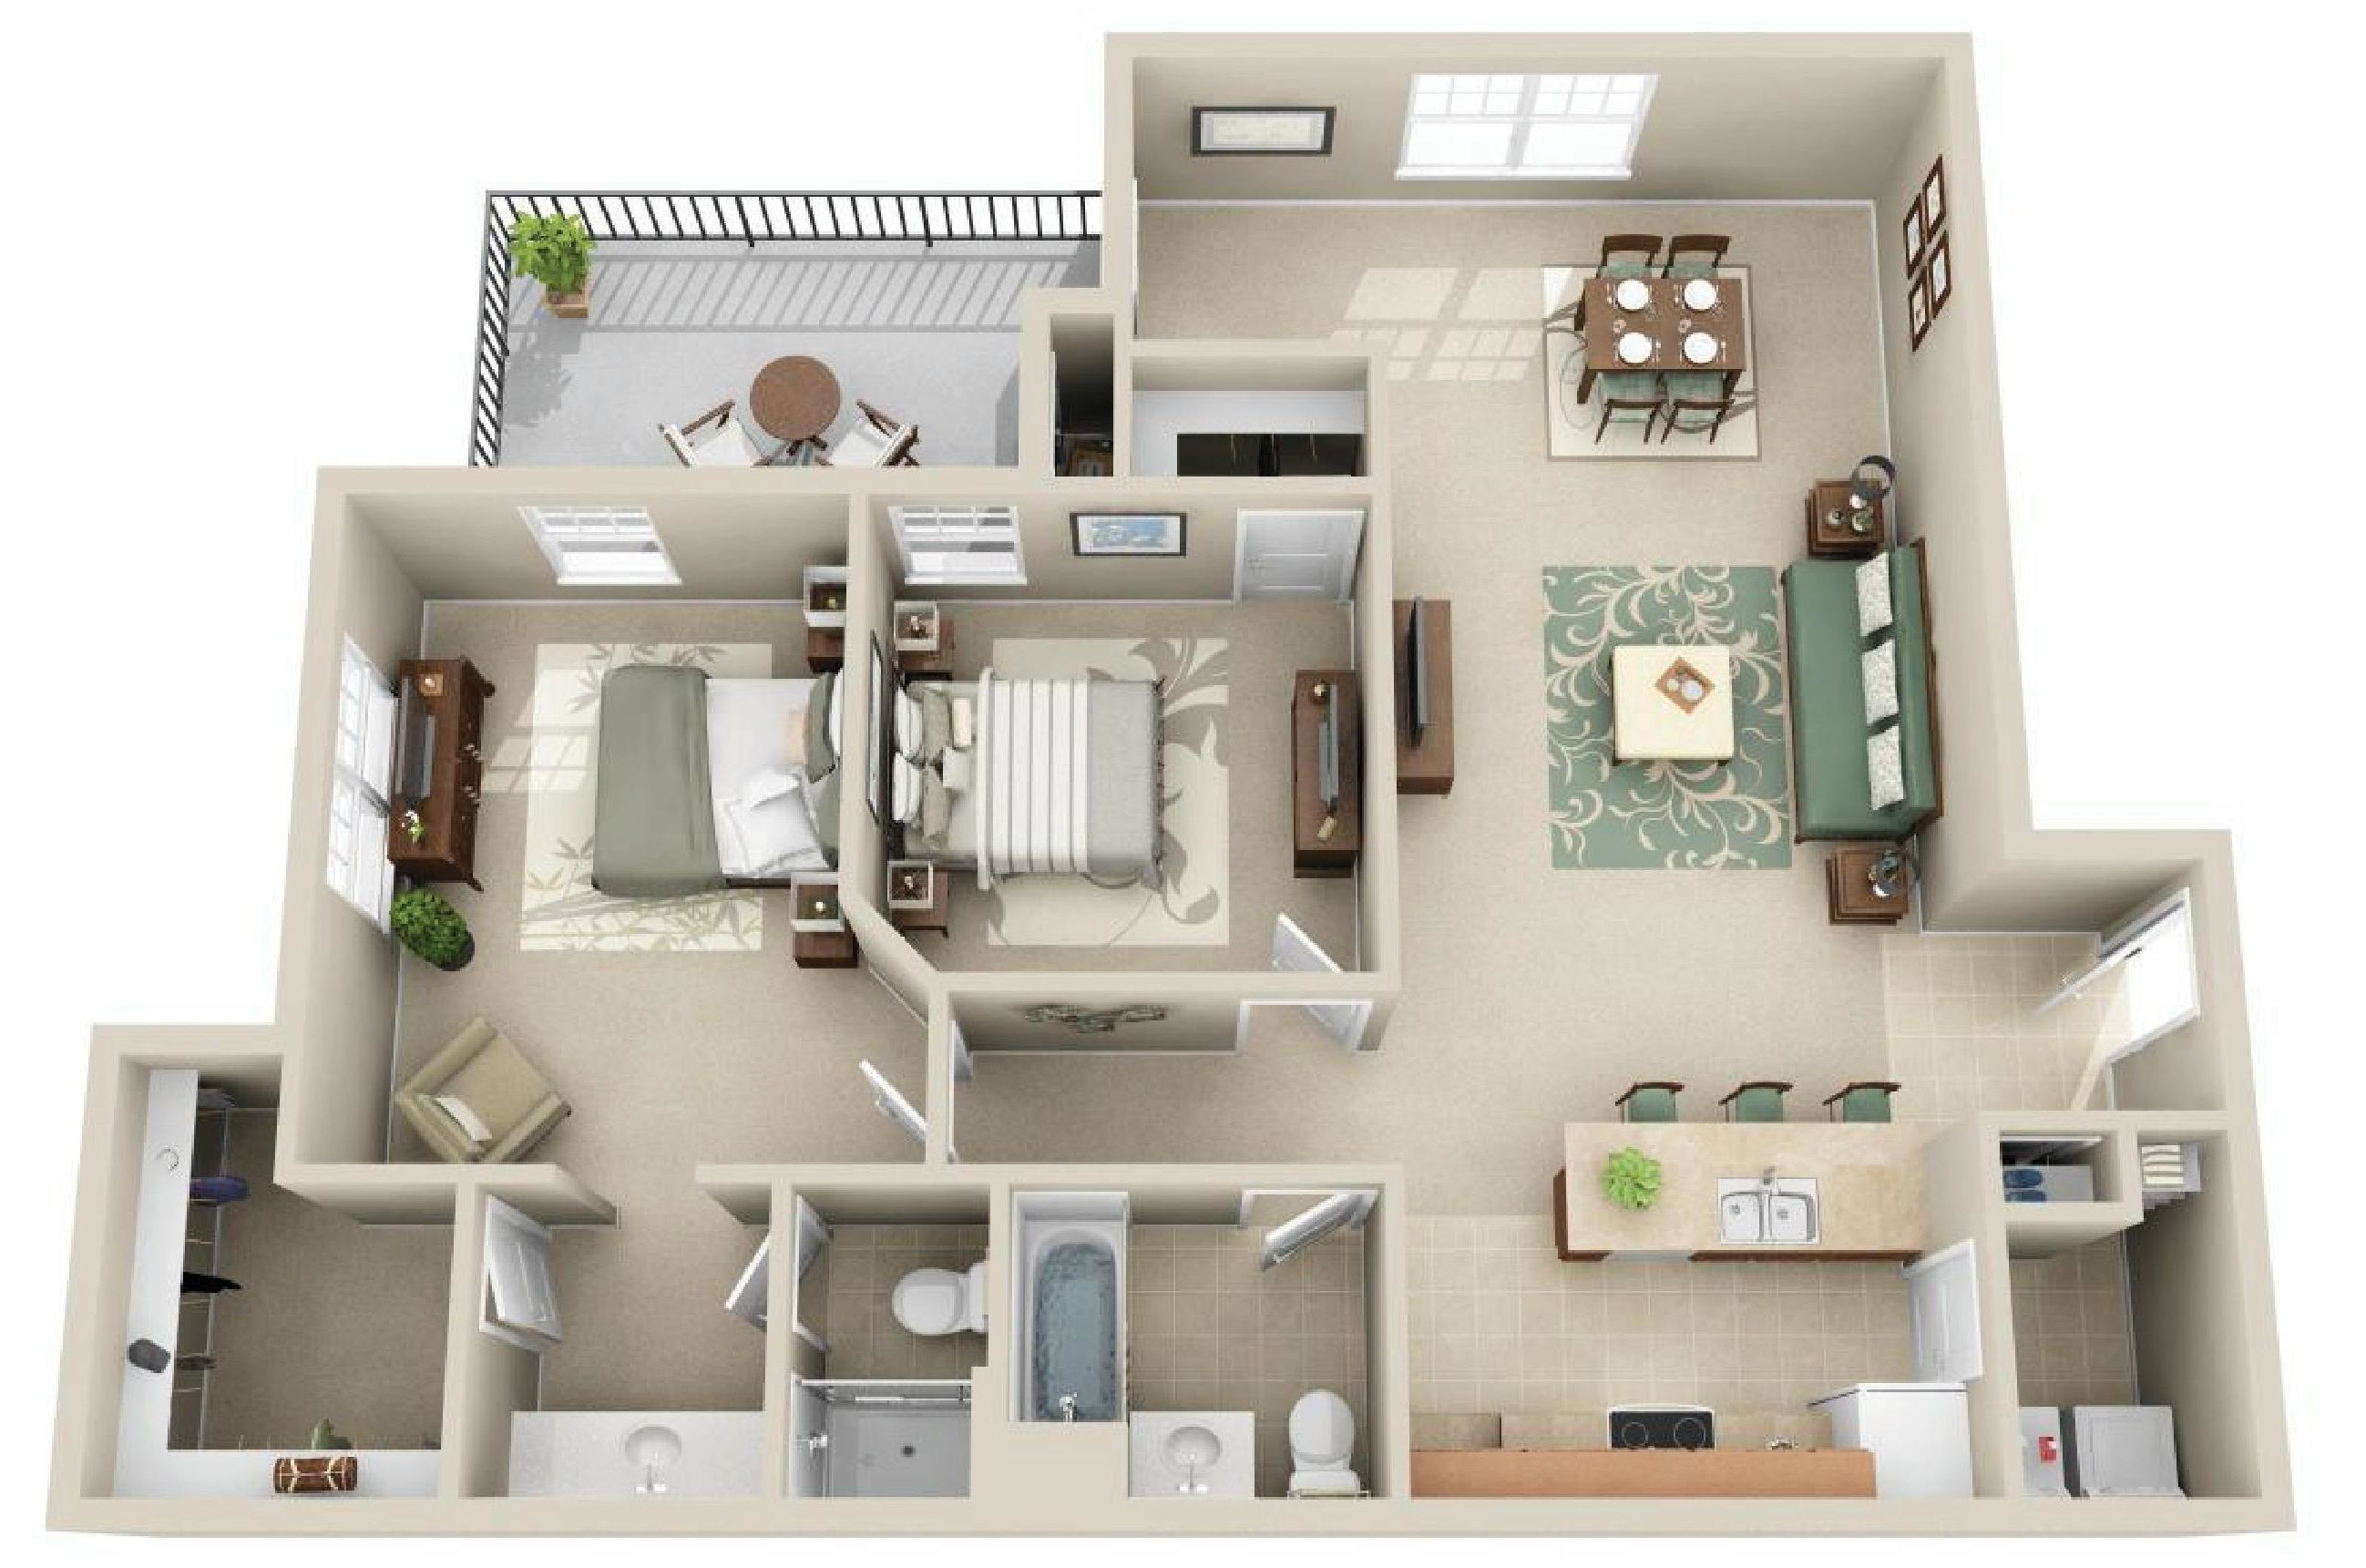 Our Wilshire B3 Floor Plan Hosts 1238 Sq Ft It Has 2 Bedrooms And 2 Bathrooms Architectural Floor Plans Sims House Design Small House Plans